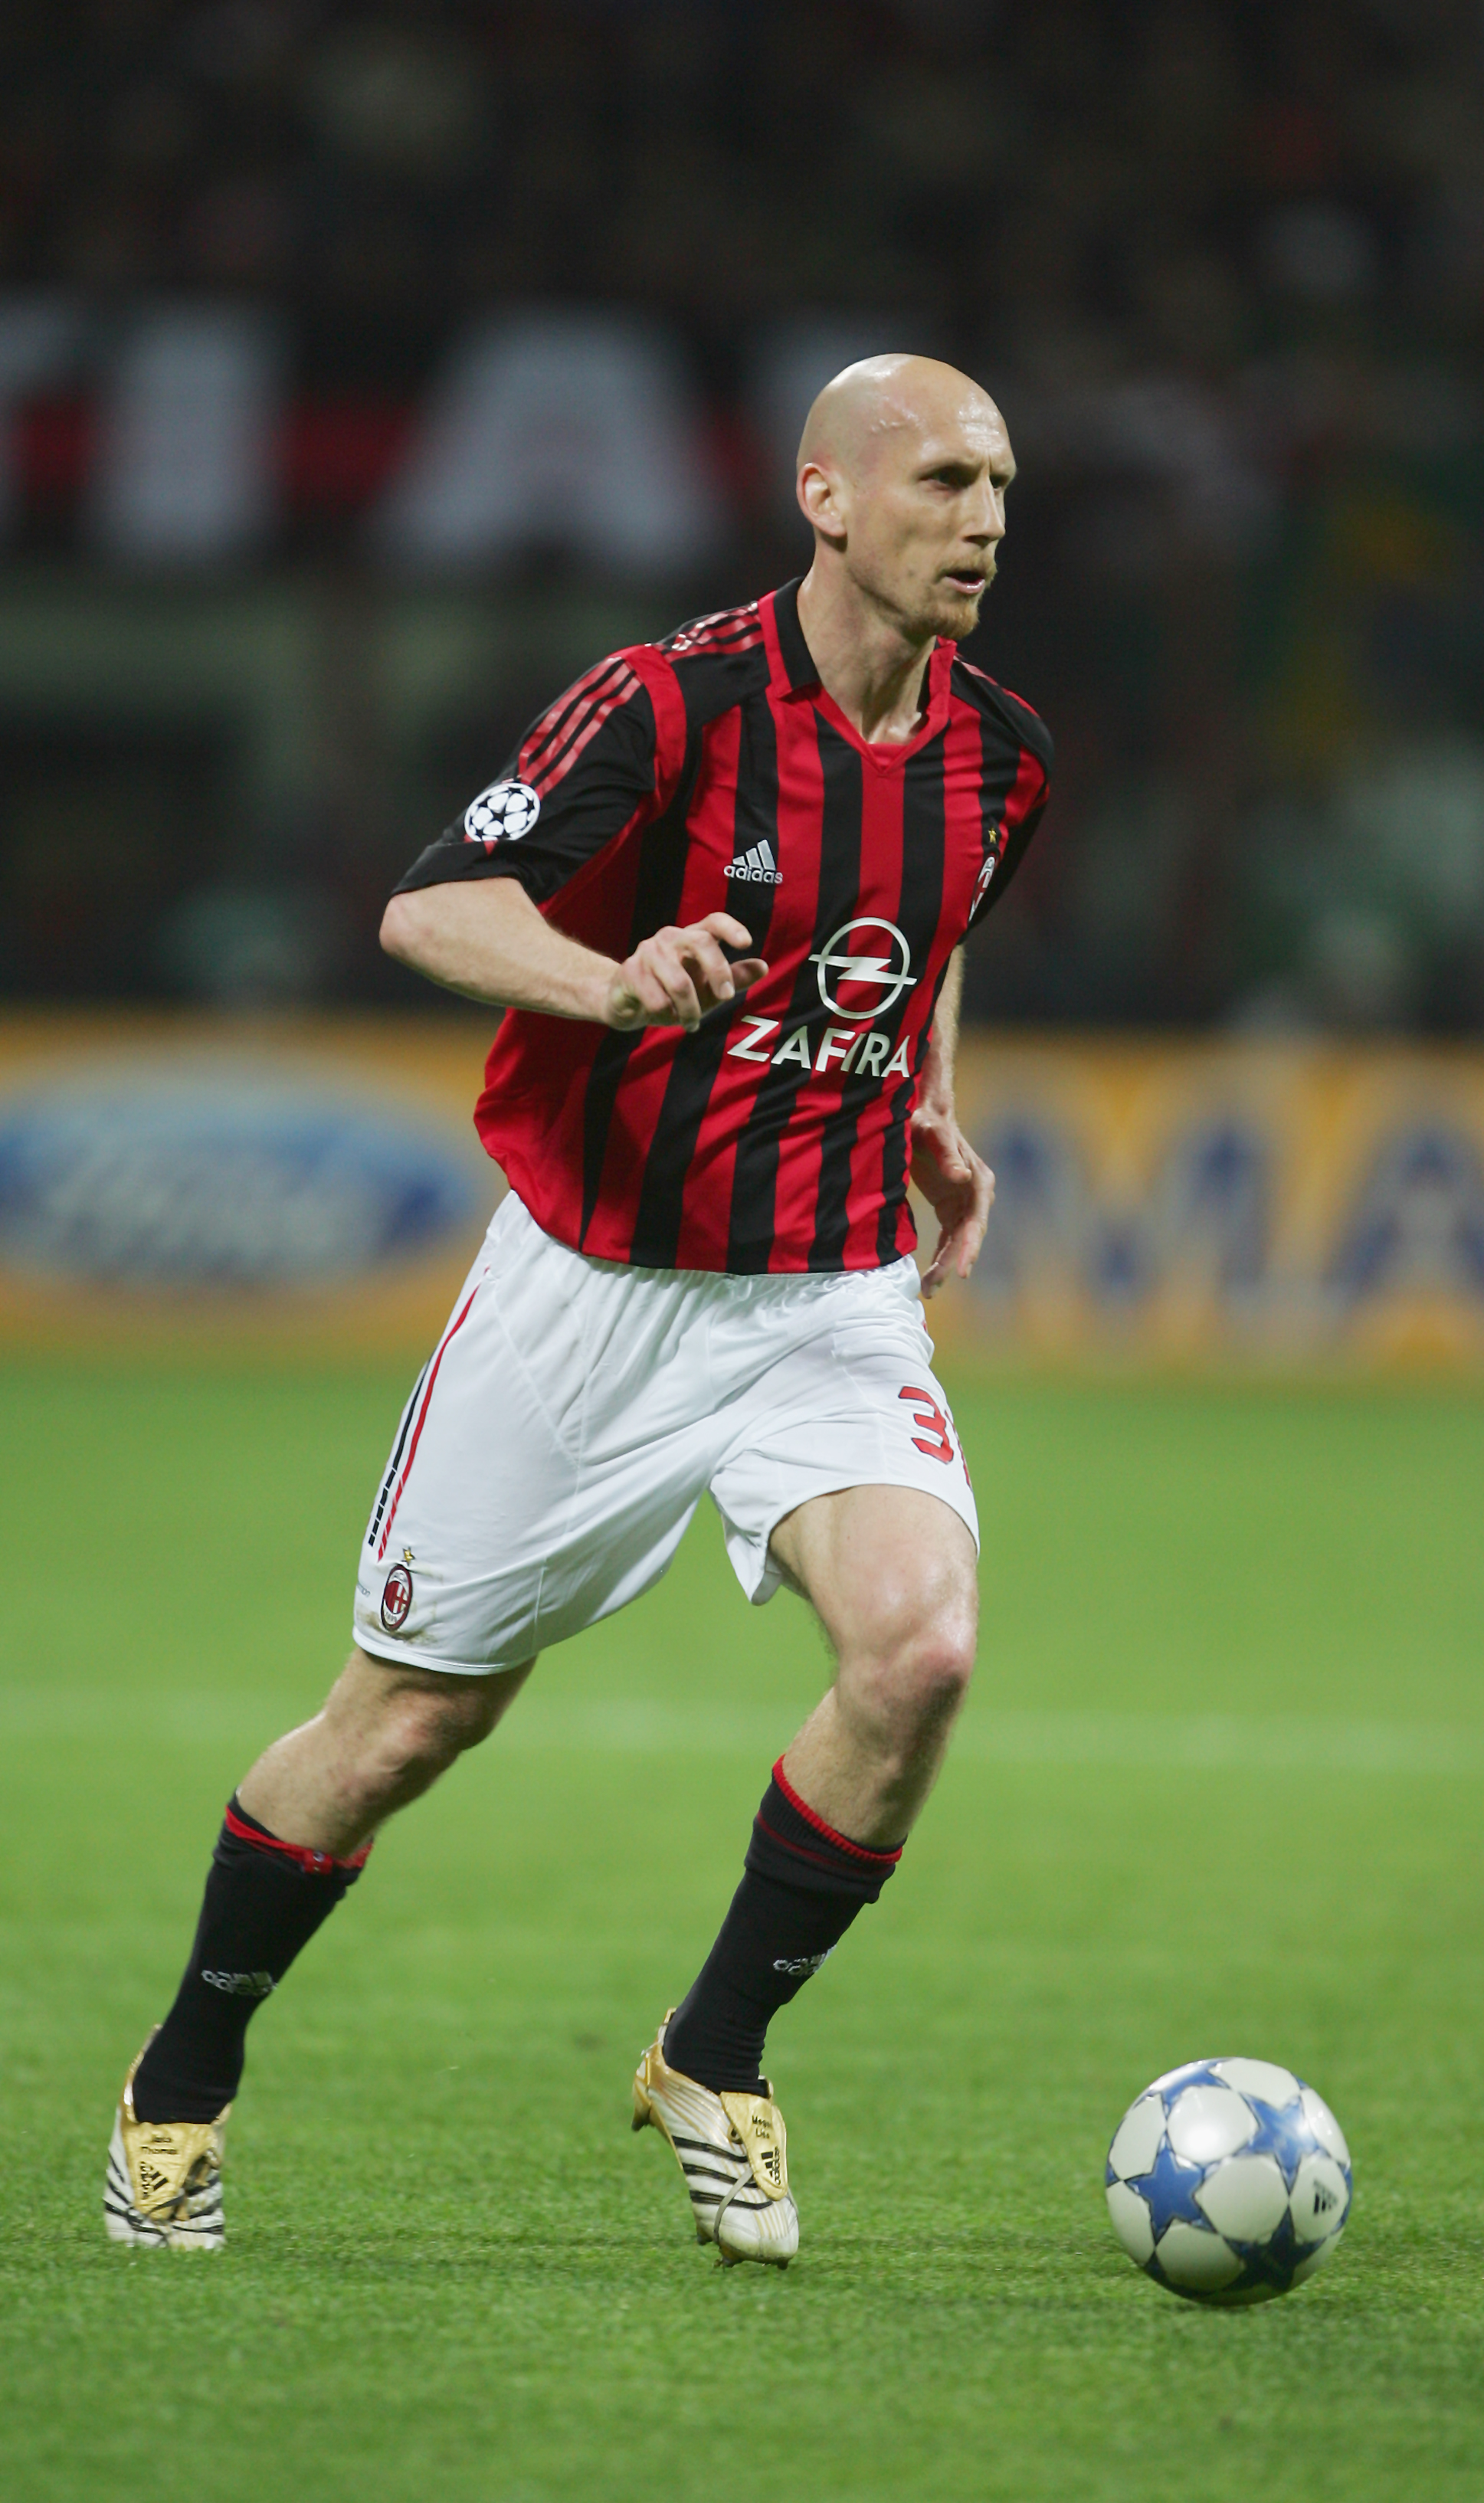 MILAN, ITALY - APRIL 18:  Jaap Stam of Milan in action during the UEFA Champions League Semi Final between AC Milan and Barcelona at the San Siro stadium on April 18, 2006 in Milan, Italy.  (Photo by Mike Hewitt/Getty Images)